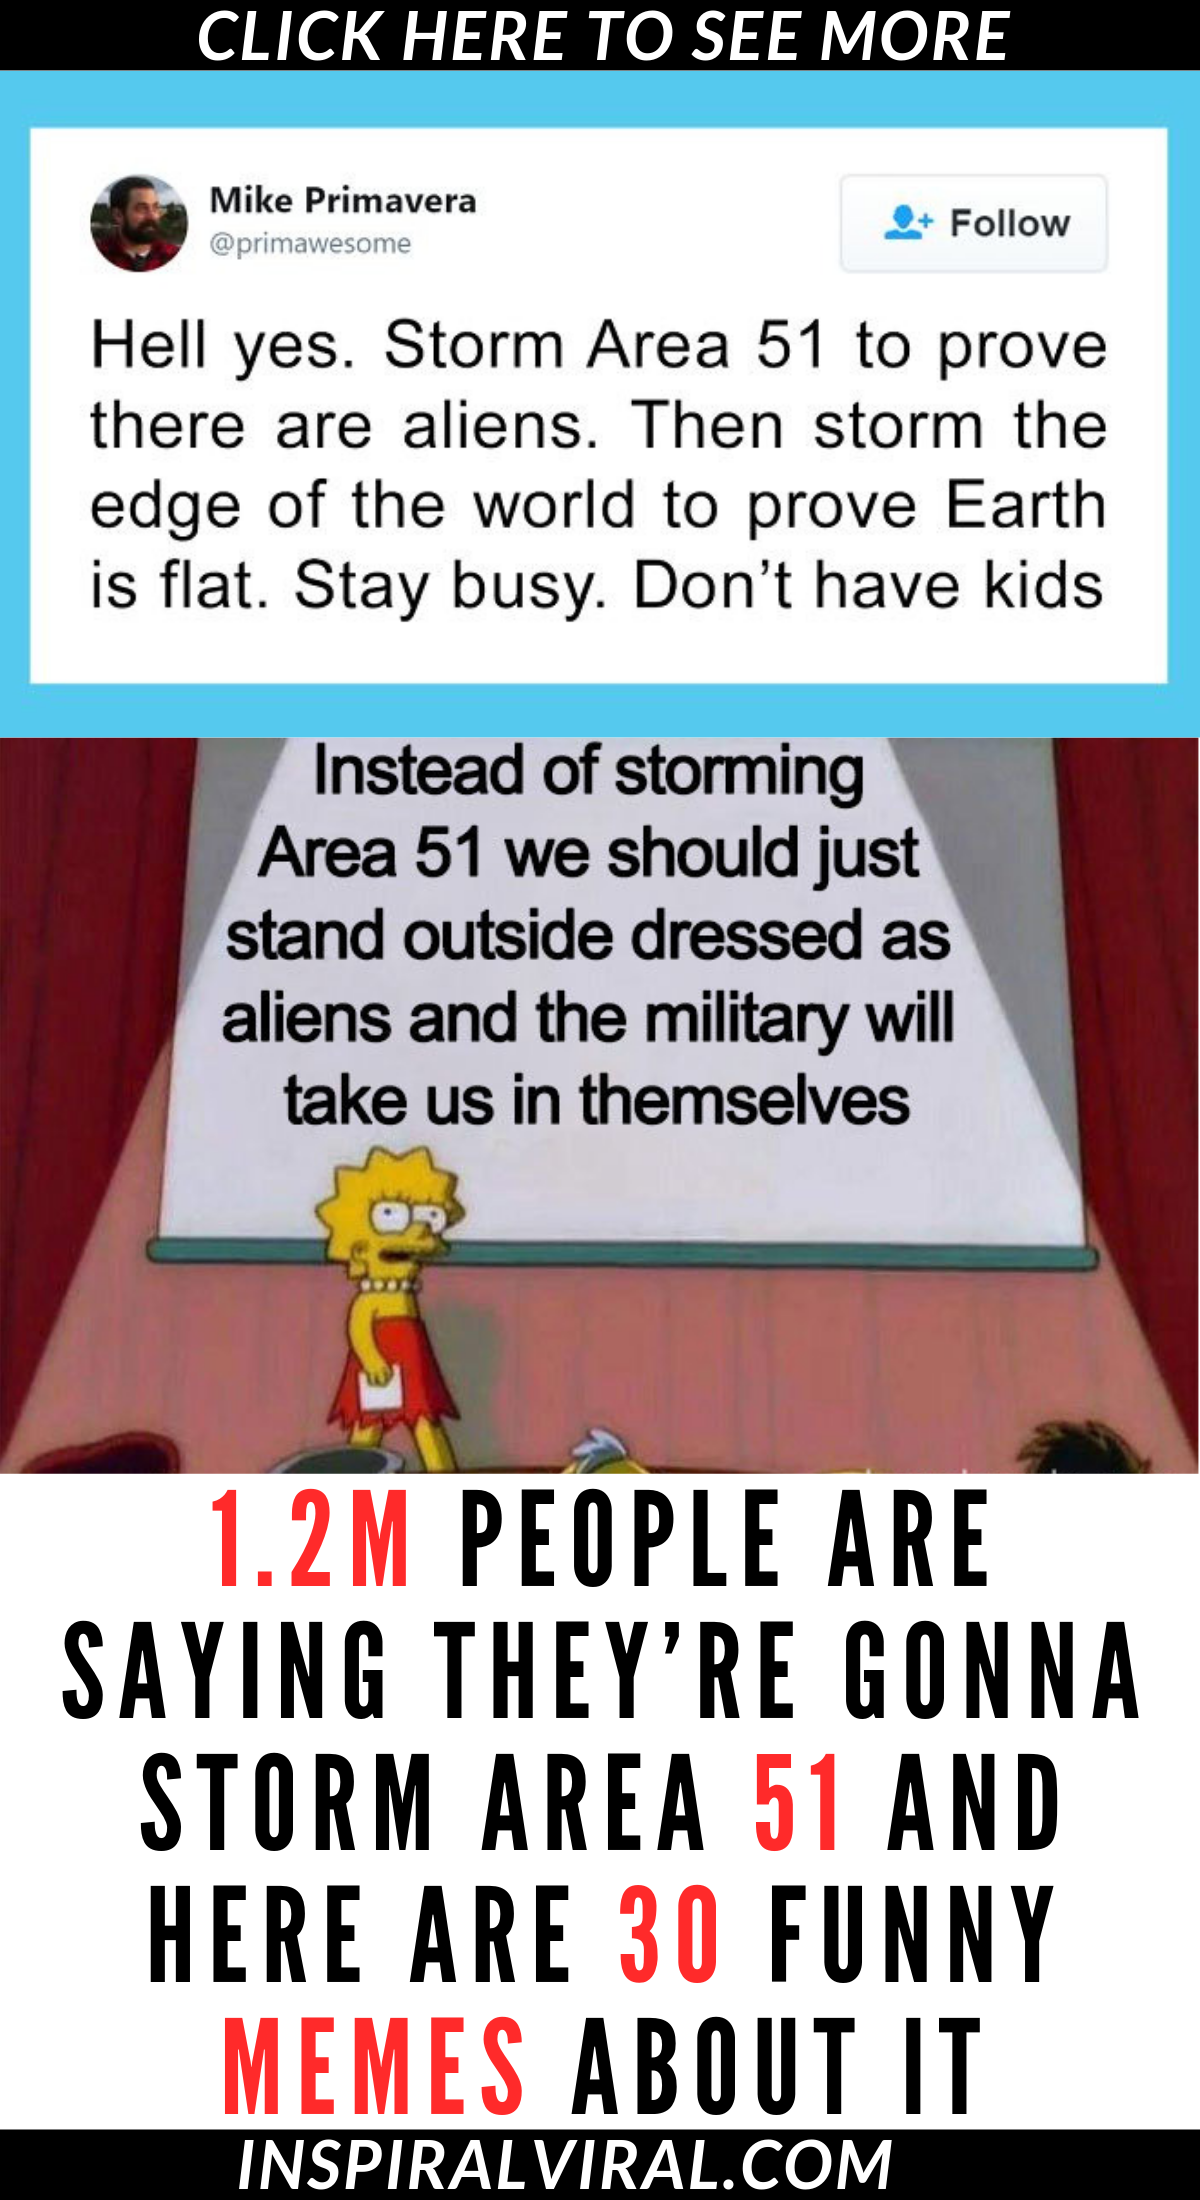 """1.2M People Are Saying They're Gonna Storm Area 51 And Here Are 30 Funny Memes About It What started off as a flippant joke has taken on a life of its own as people began to sign up to """"Storm Area 51"""" in their hundreds of thousands, sharing memes and vowing to """"check out those alien cheeks."""